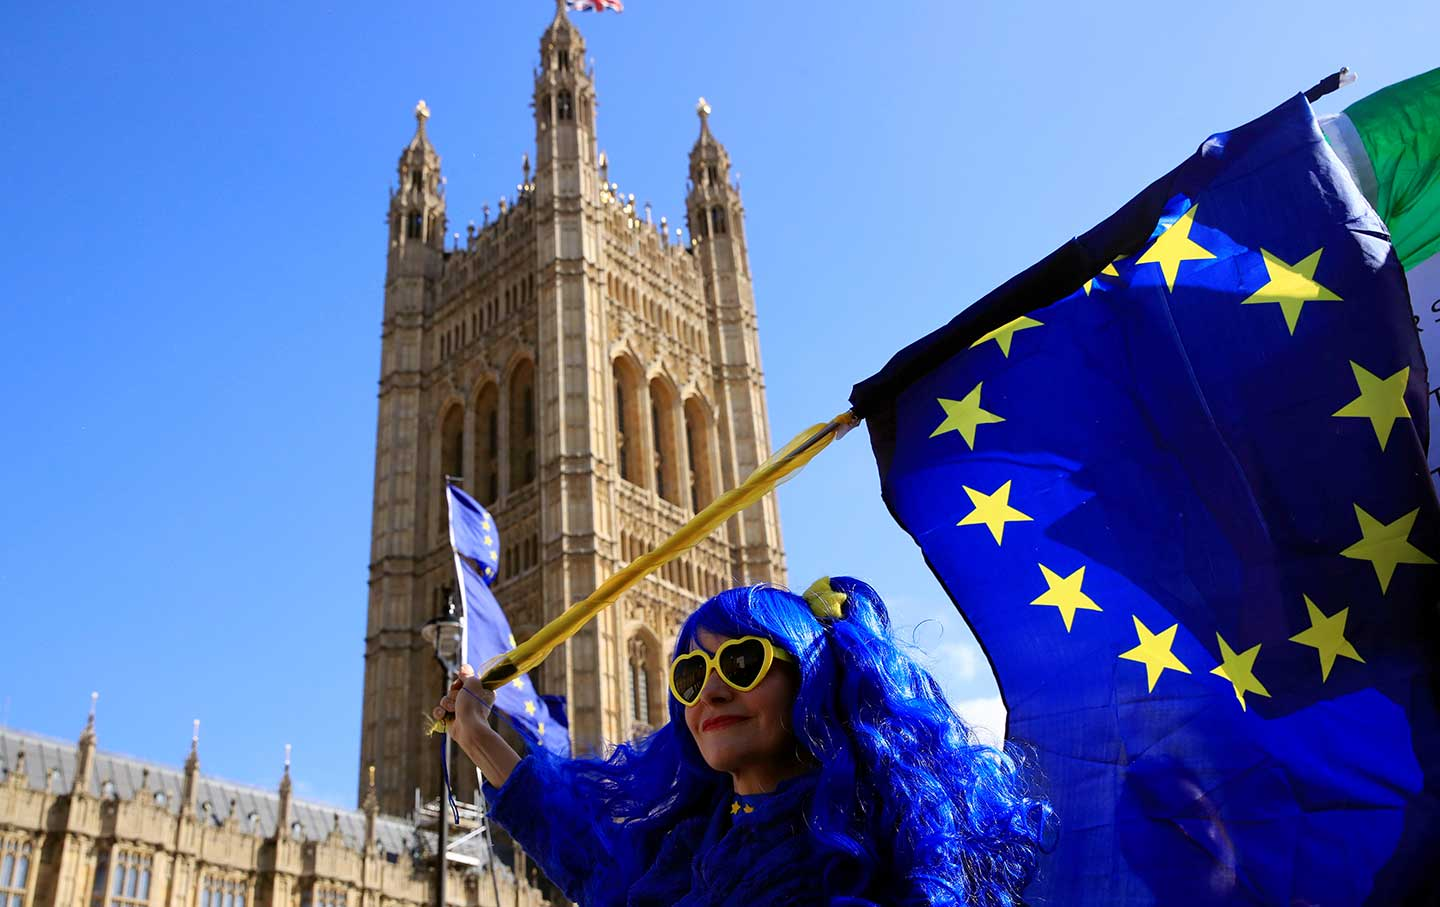 anti brexit protester rtr img.'